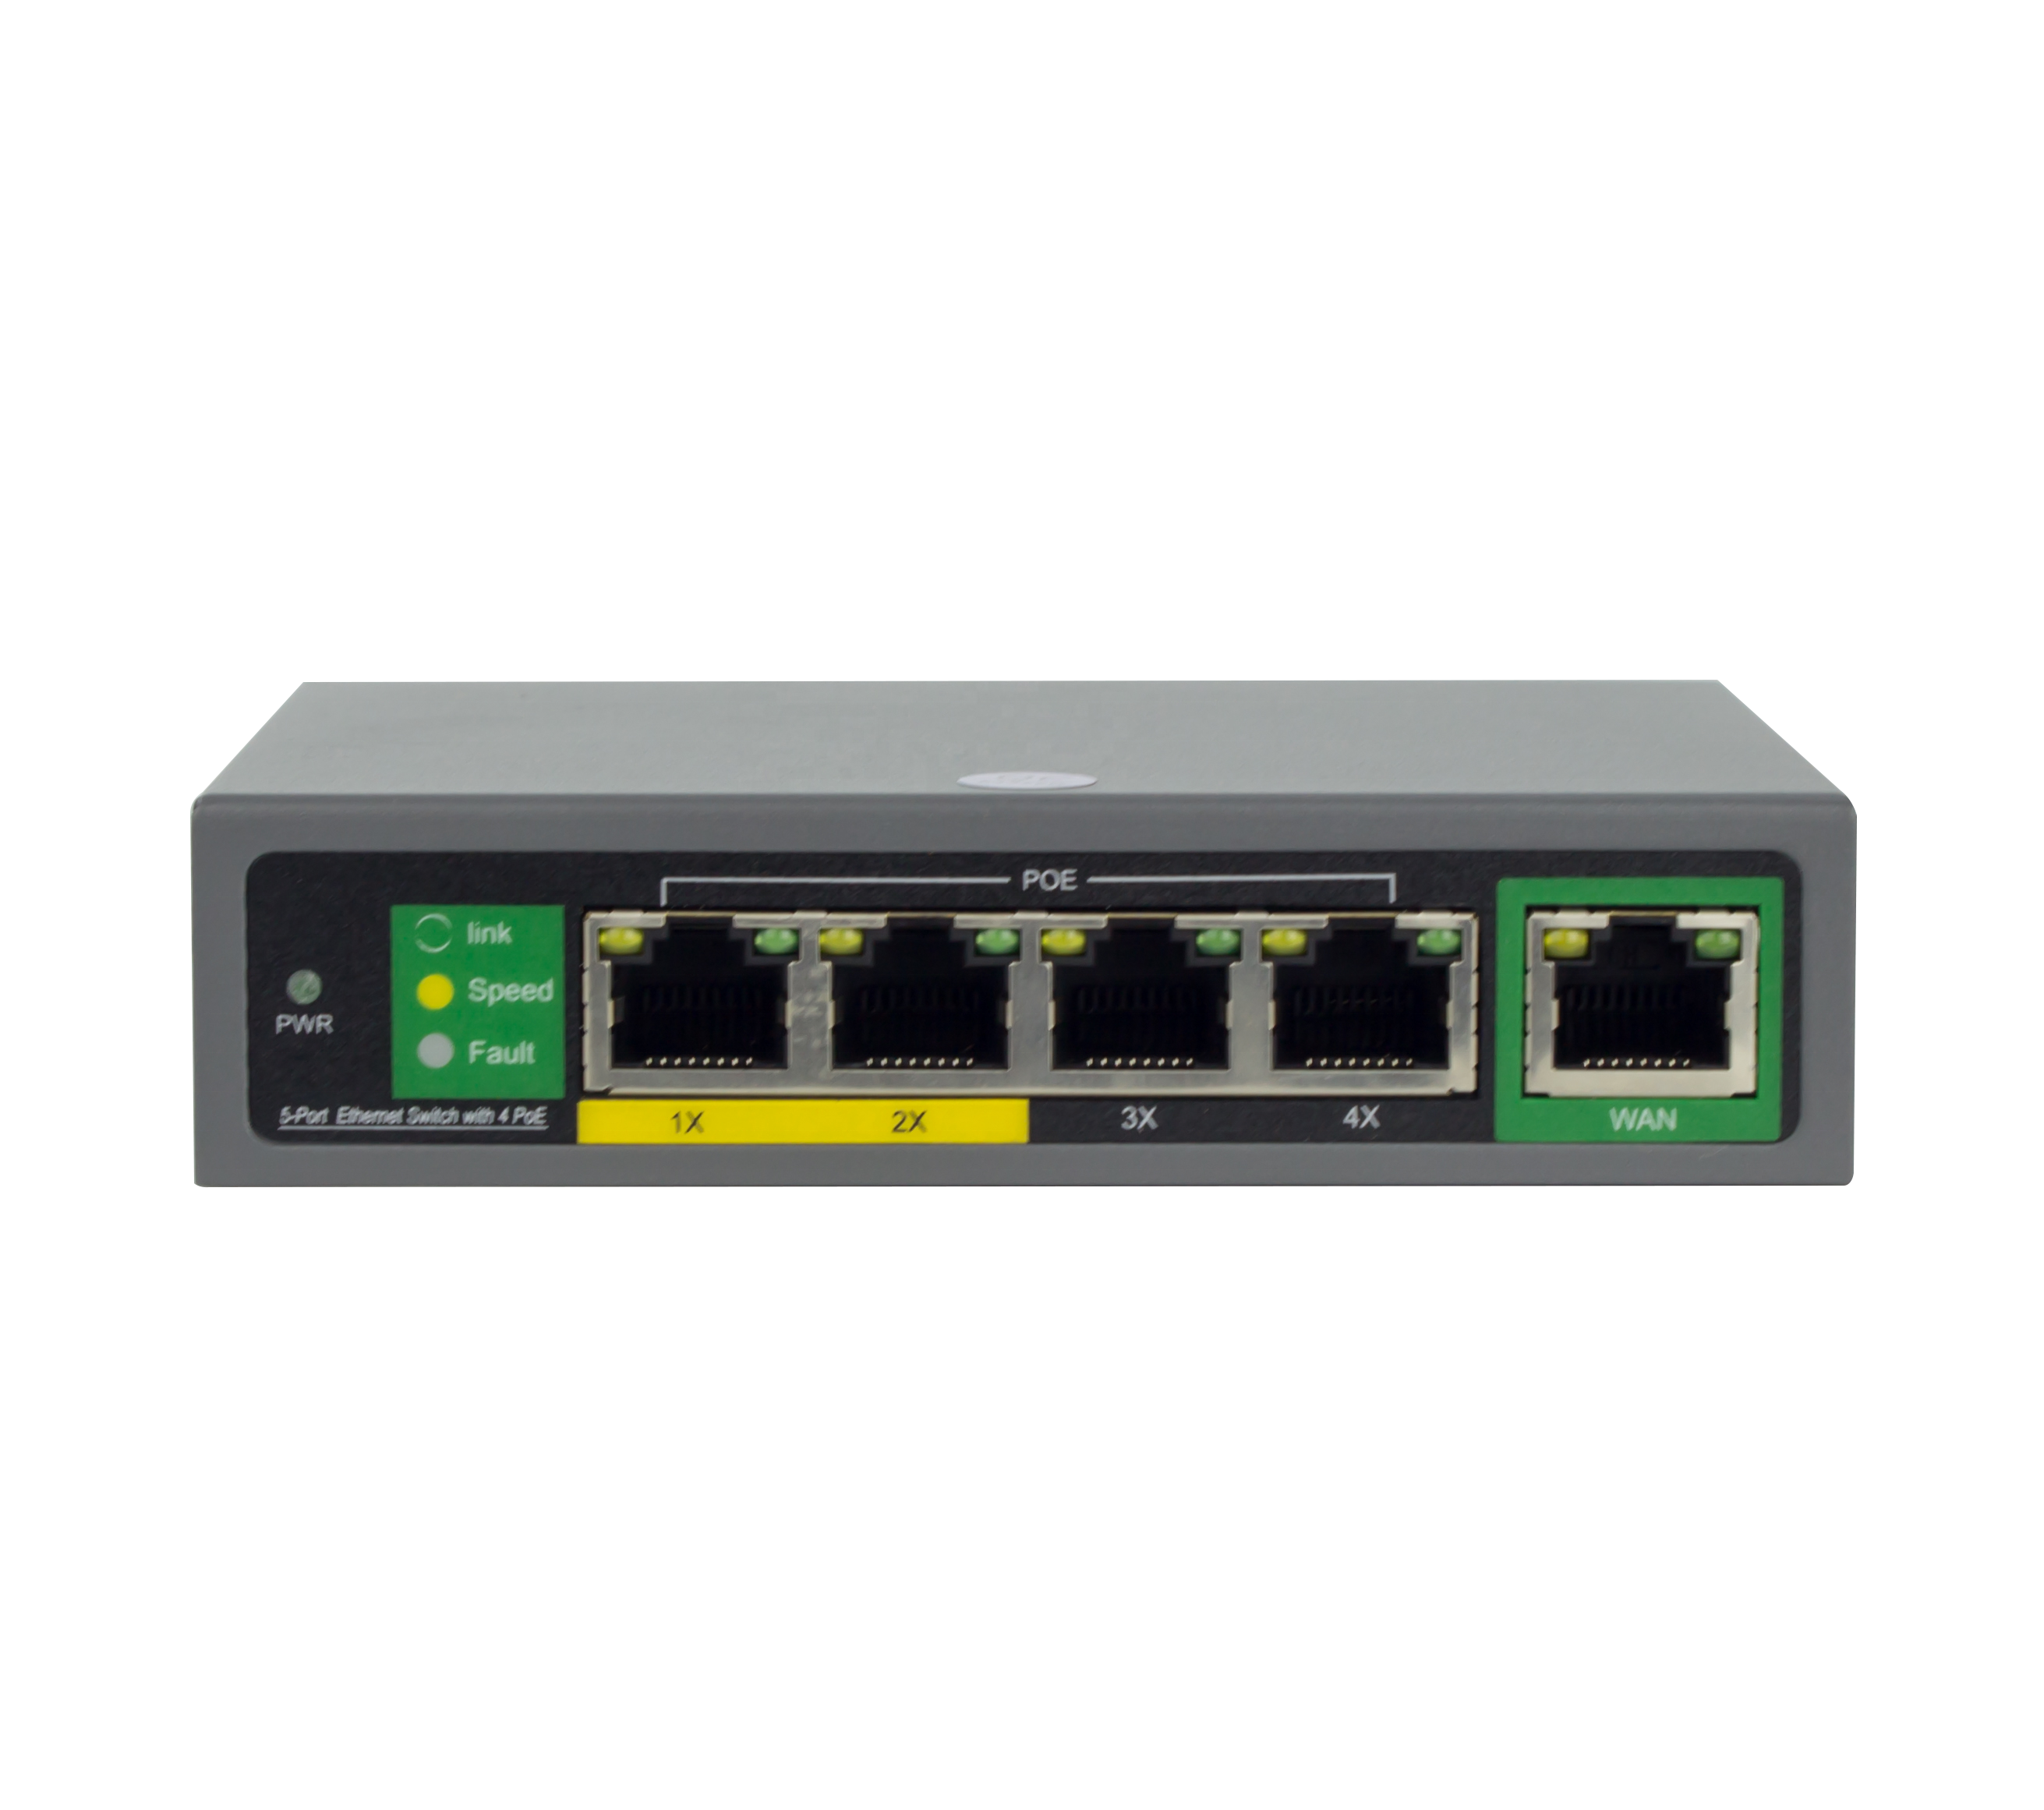 Porta Fast Ethernet Switch POE Gigabit conseguiu 4 10/100/1000M Switch de Rede